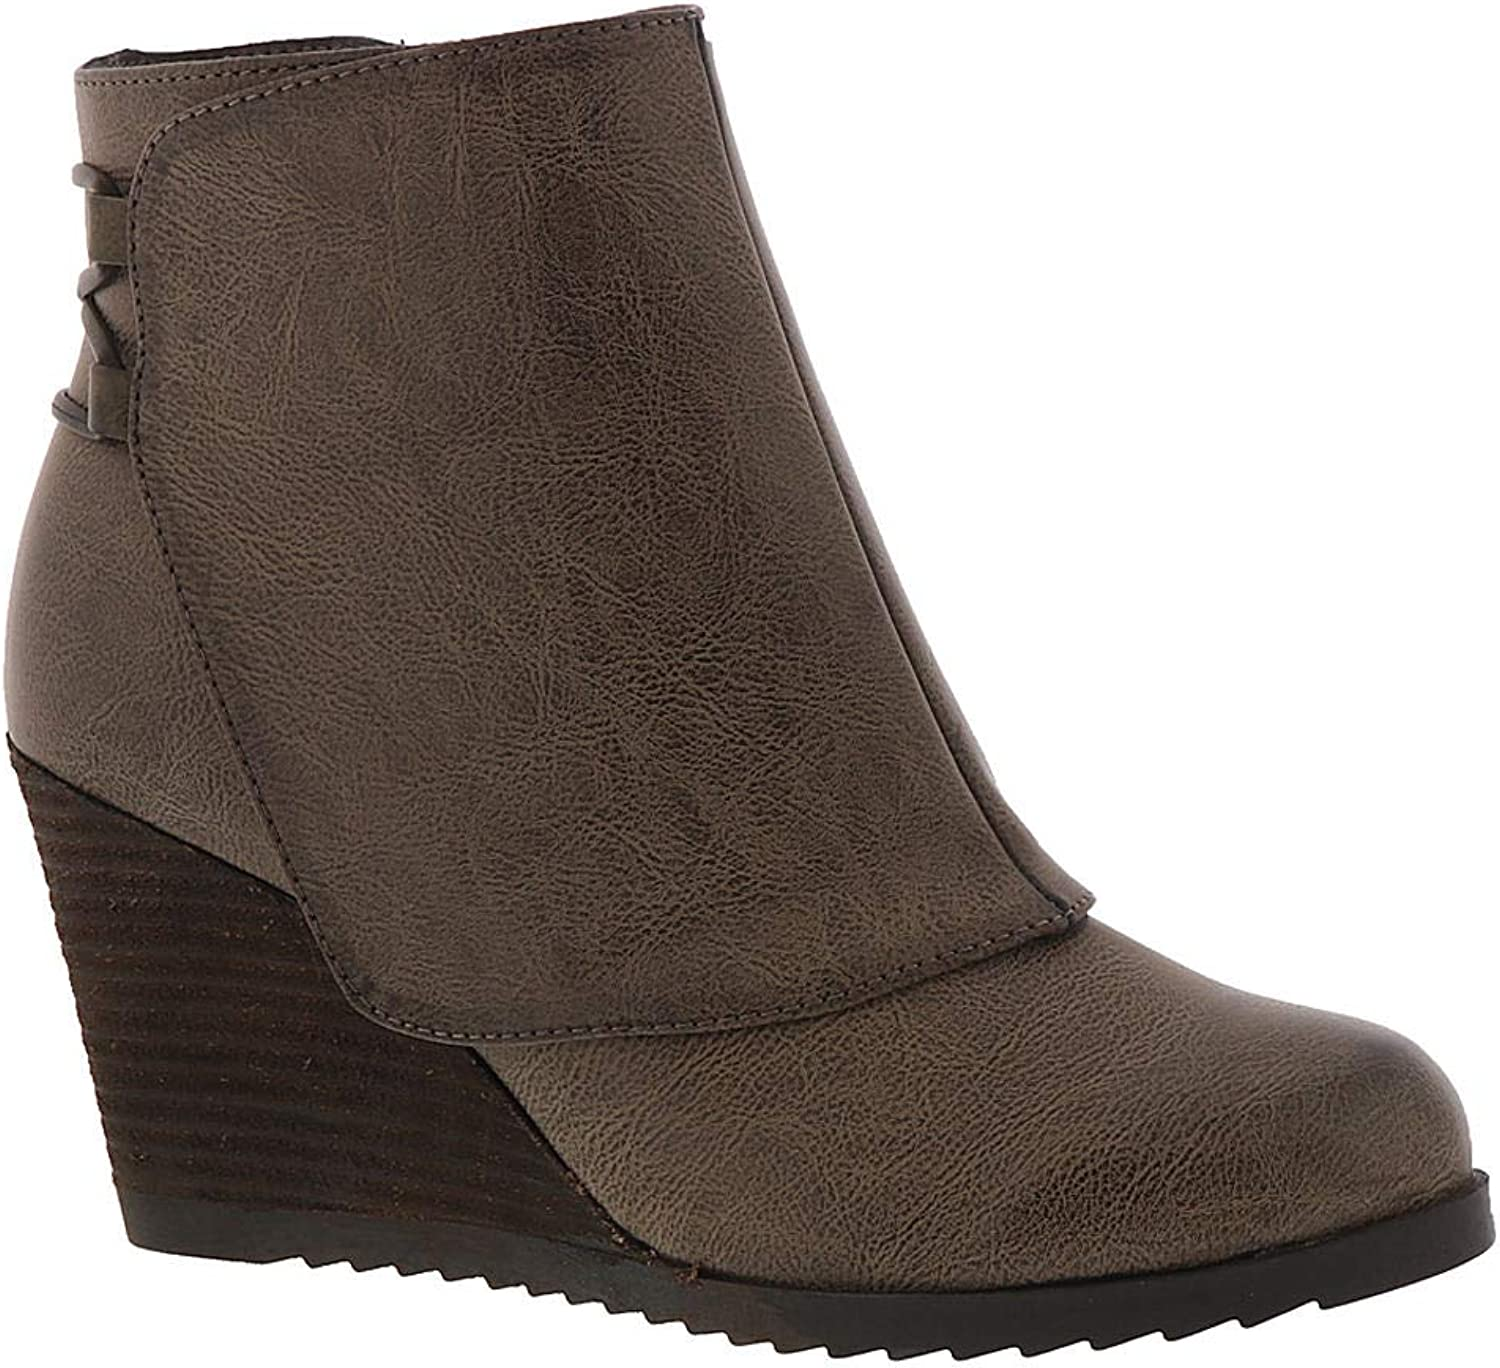 Not Rated Anahata Women's Boot